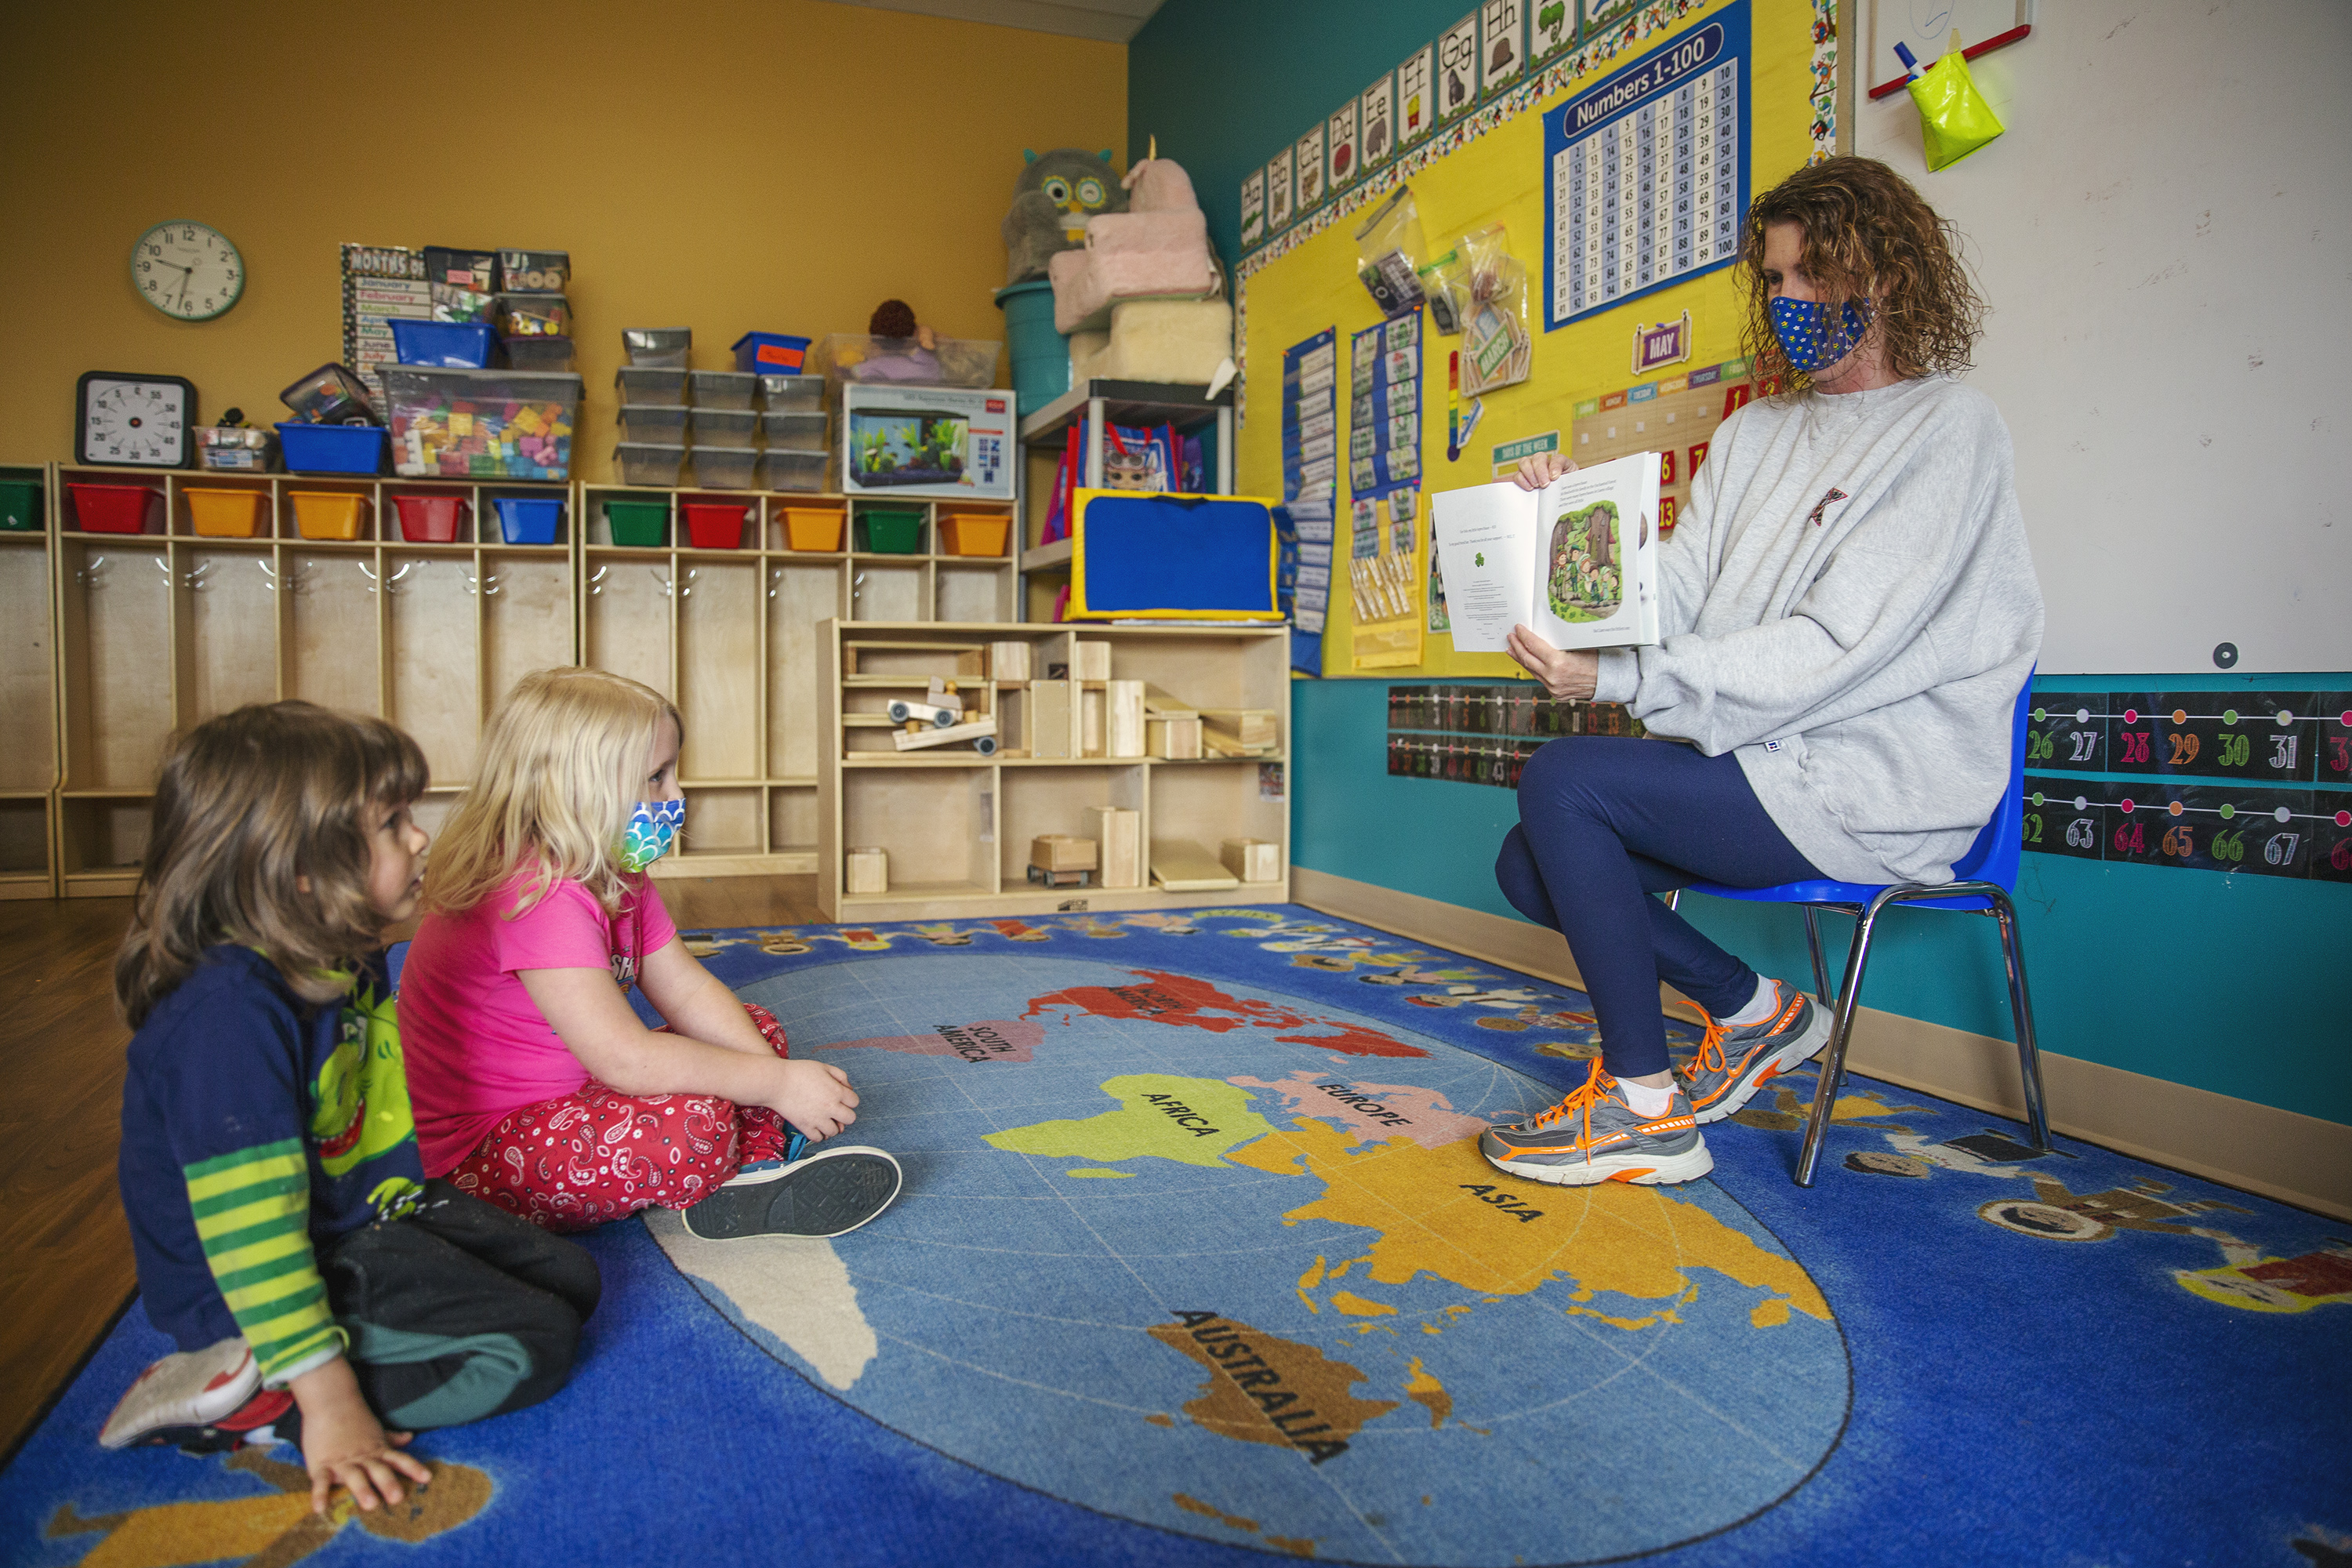 Do Kids Have School Halloween 2020 Pennsylvania Child care centers in Pa. are a bellwether for how tricky it will